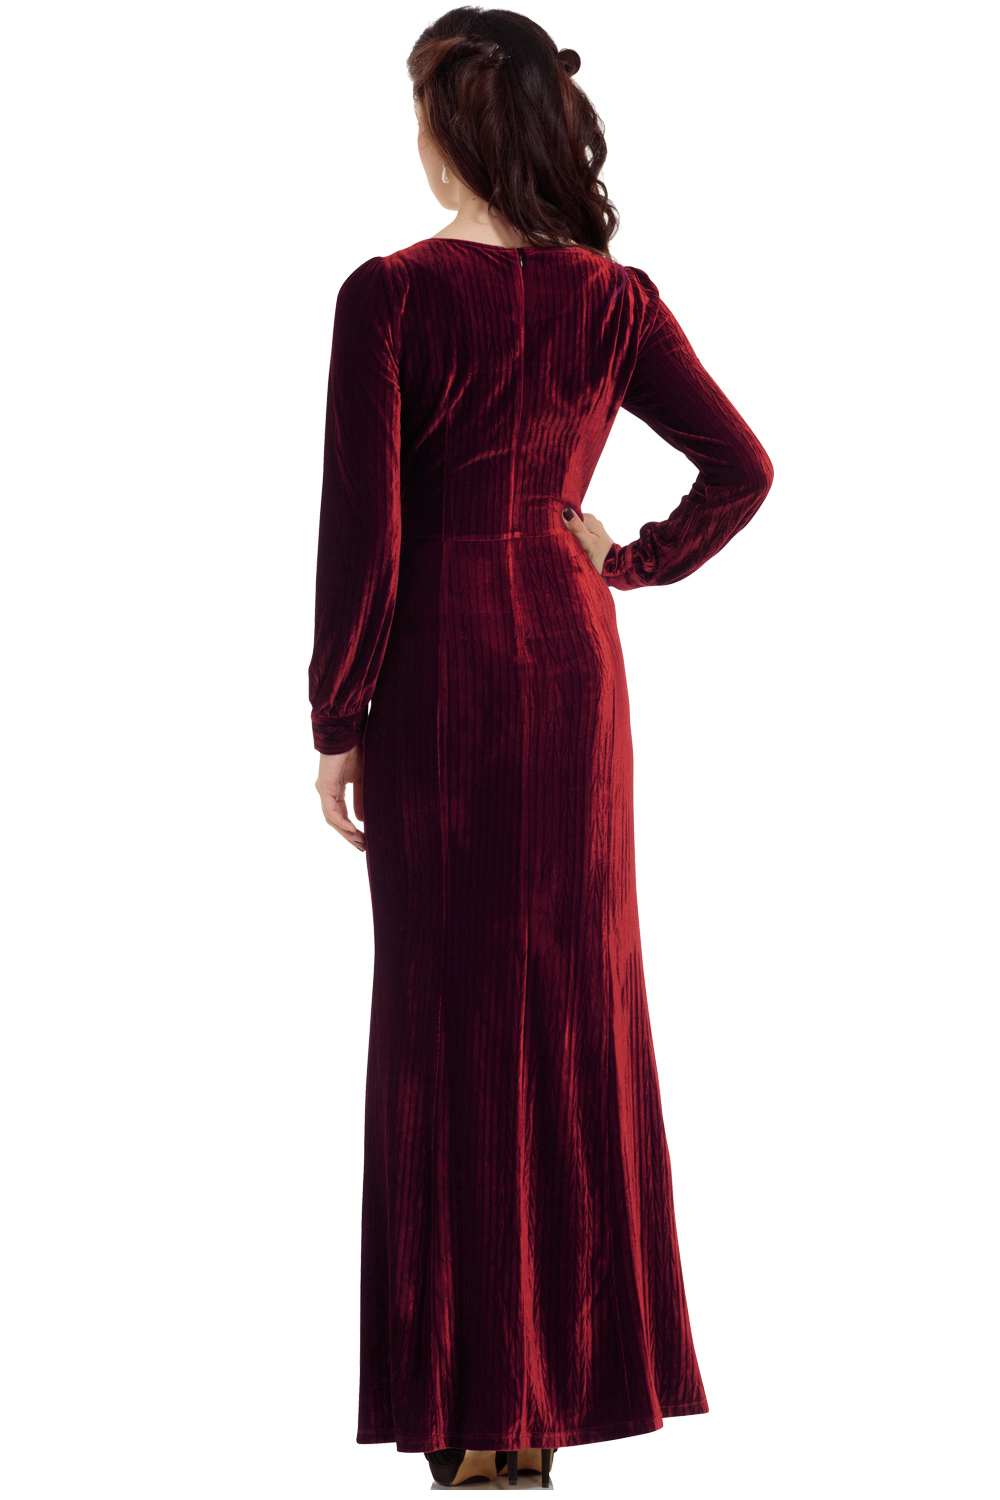 30s Vixen Olive Wine Red Glamour Velvet Dress